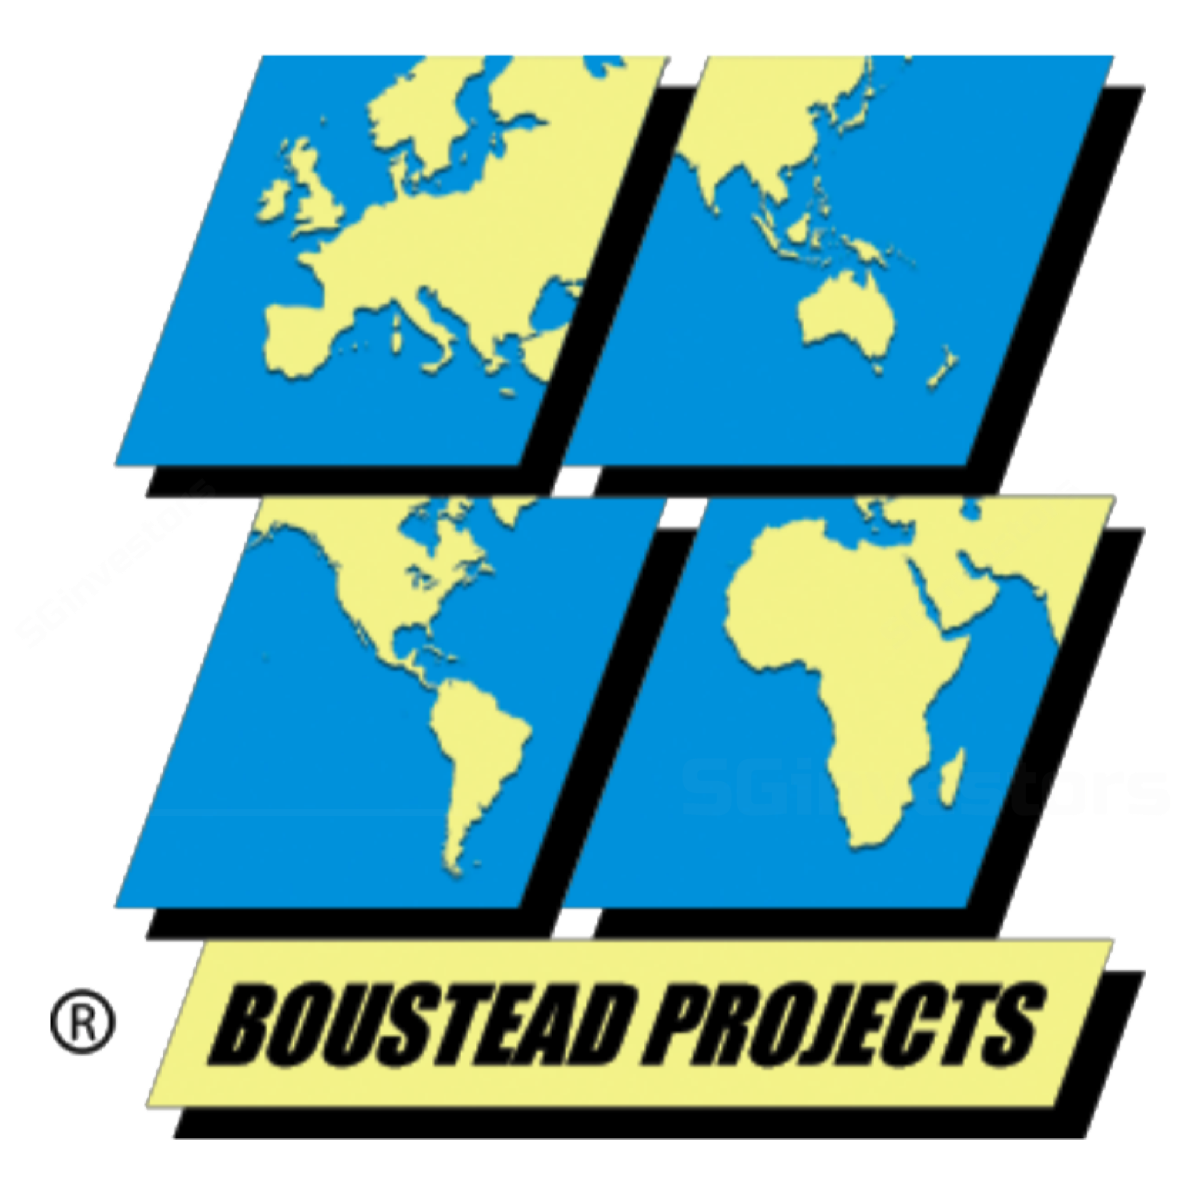 BOUSTEAD PROJECTS LIMITED (SGX:AVM) | SGinvestors.io